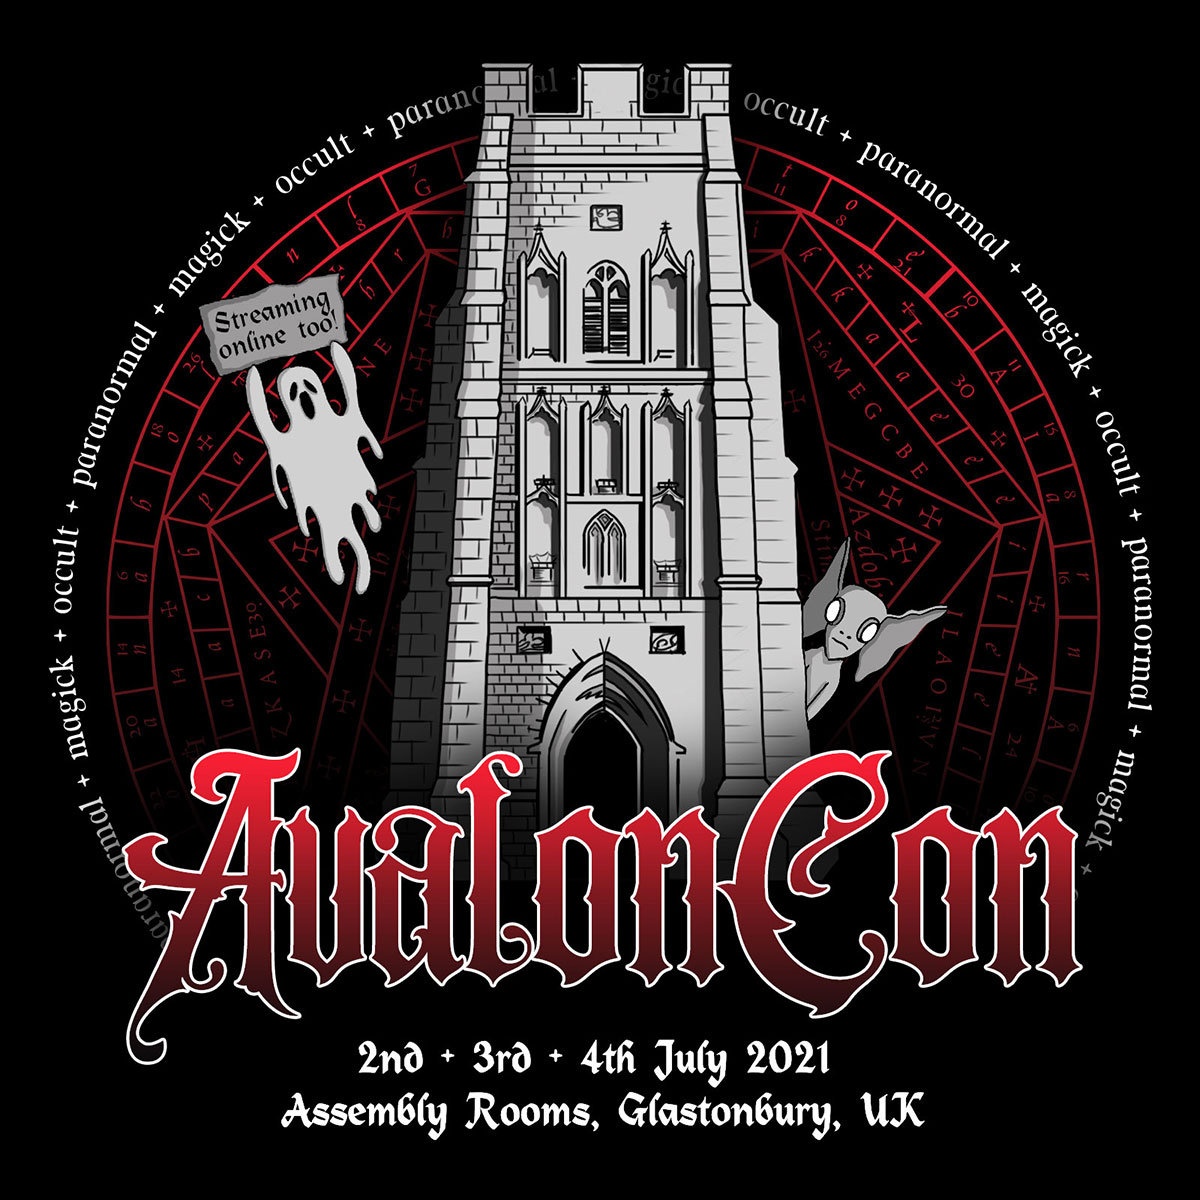 The collaborative logo created for AvalonCon.